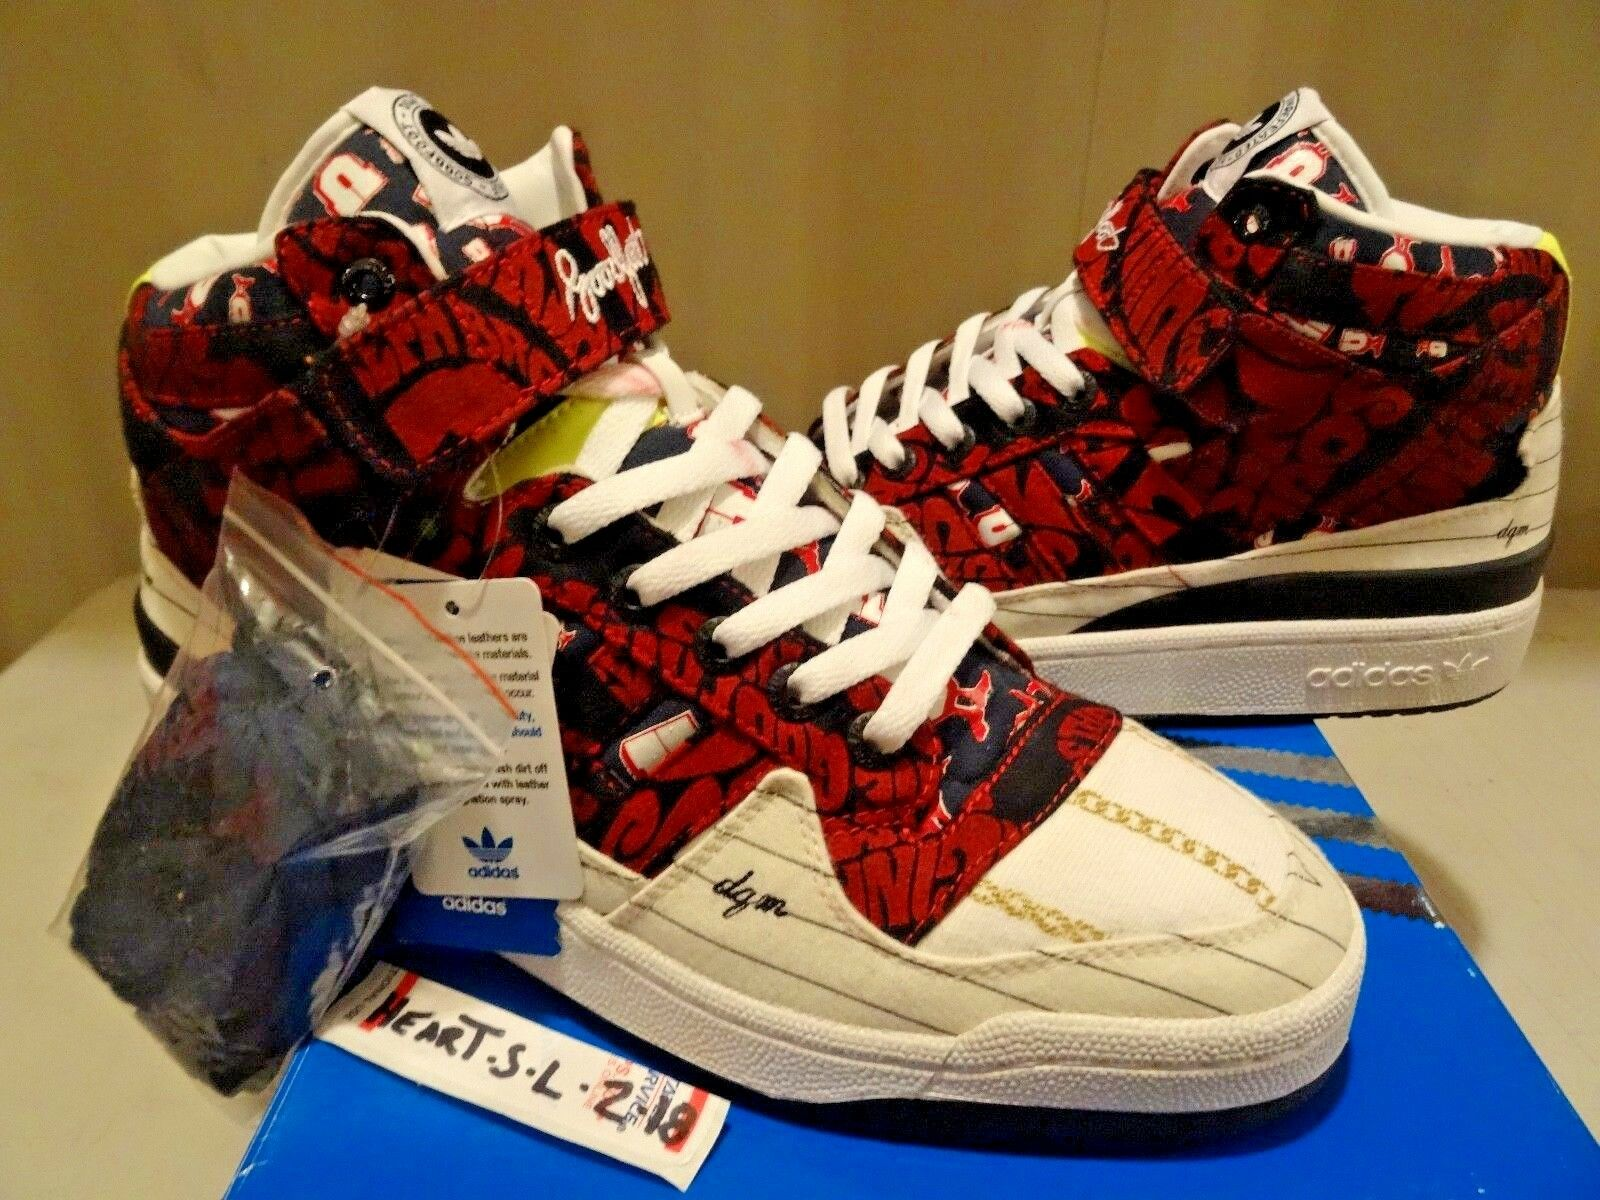 Nuevo DS Adidas Forum Mediano D Hug-DQM X Huf X Undefeated X Goodfoot YEEZY